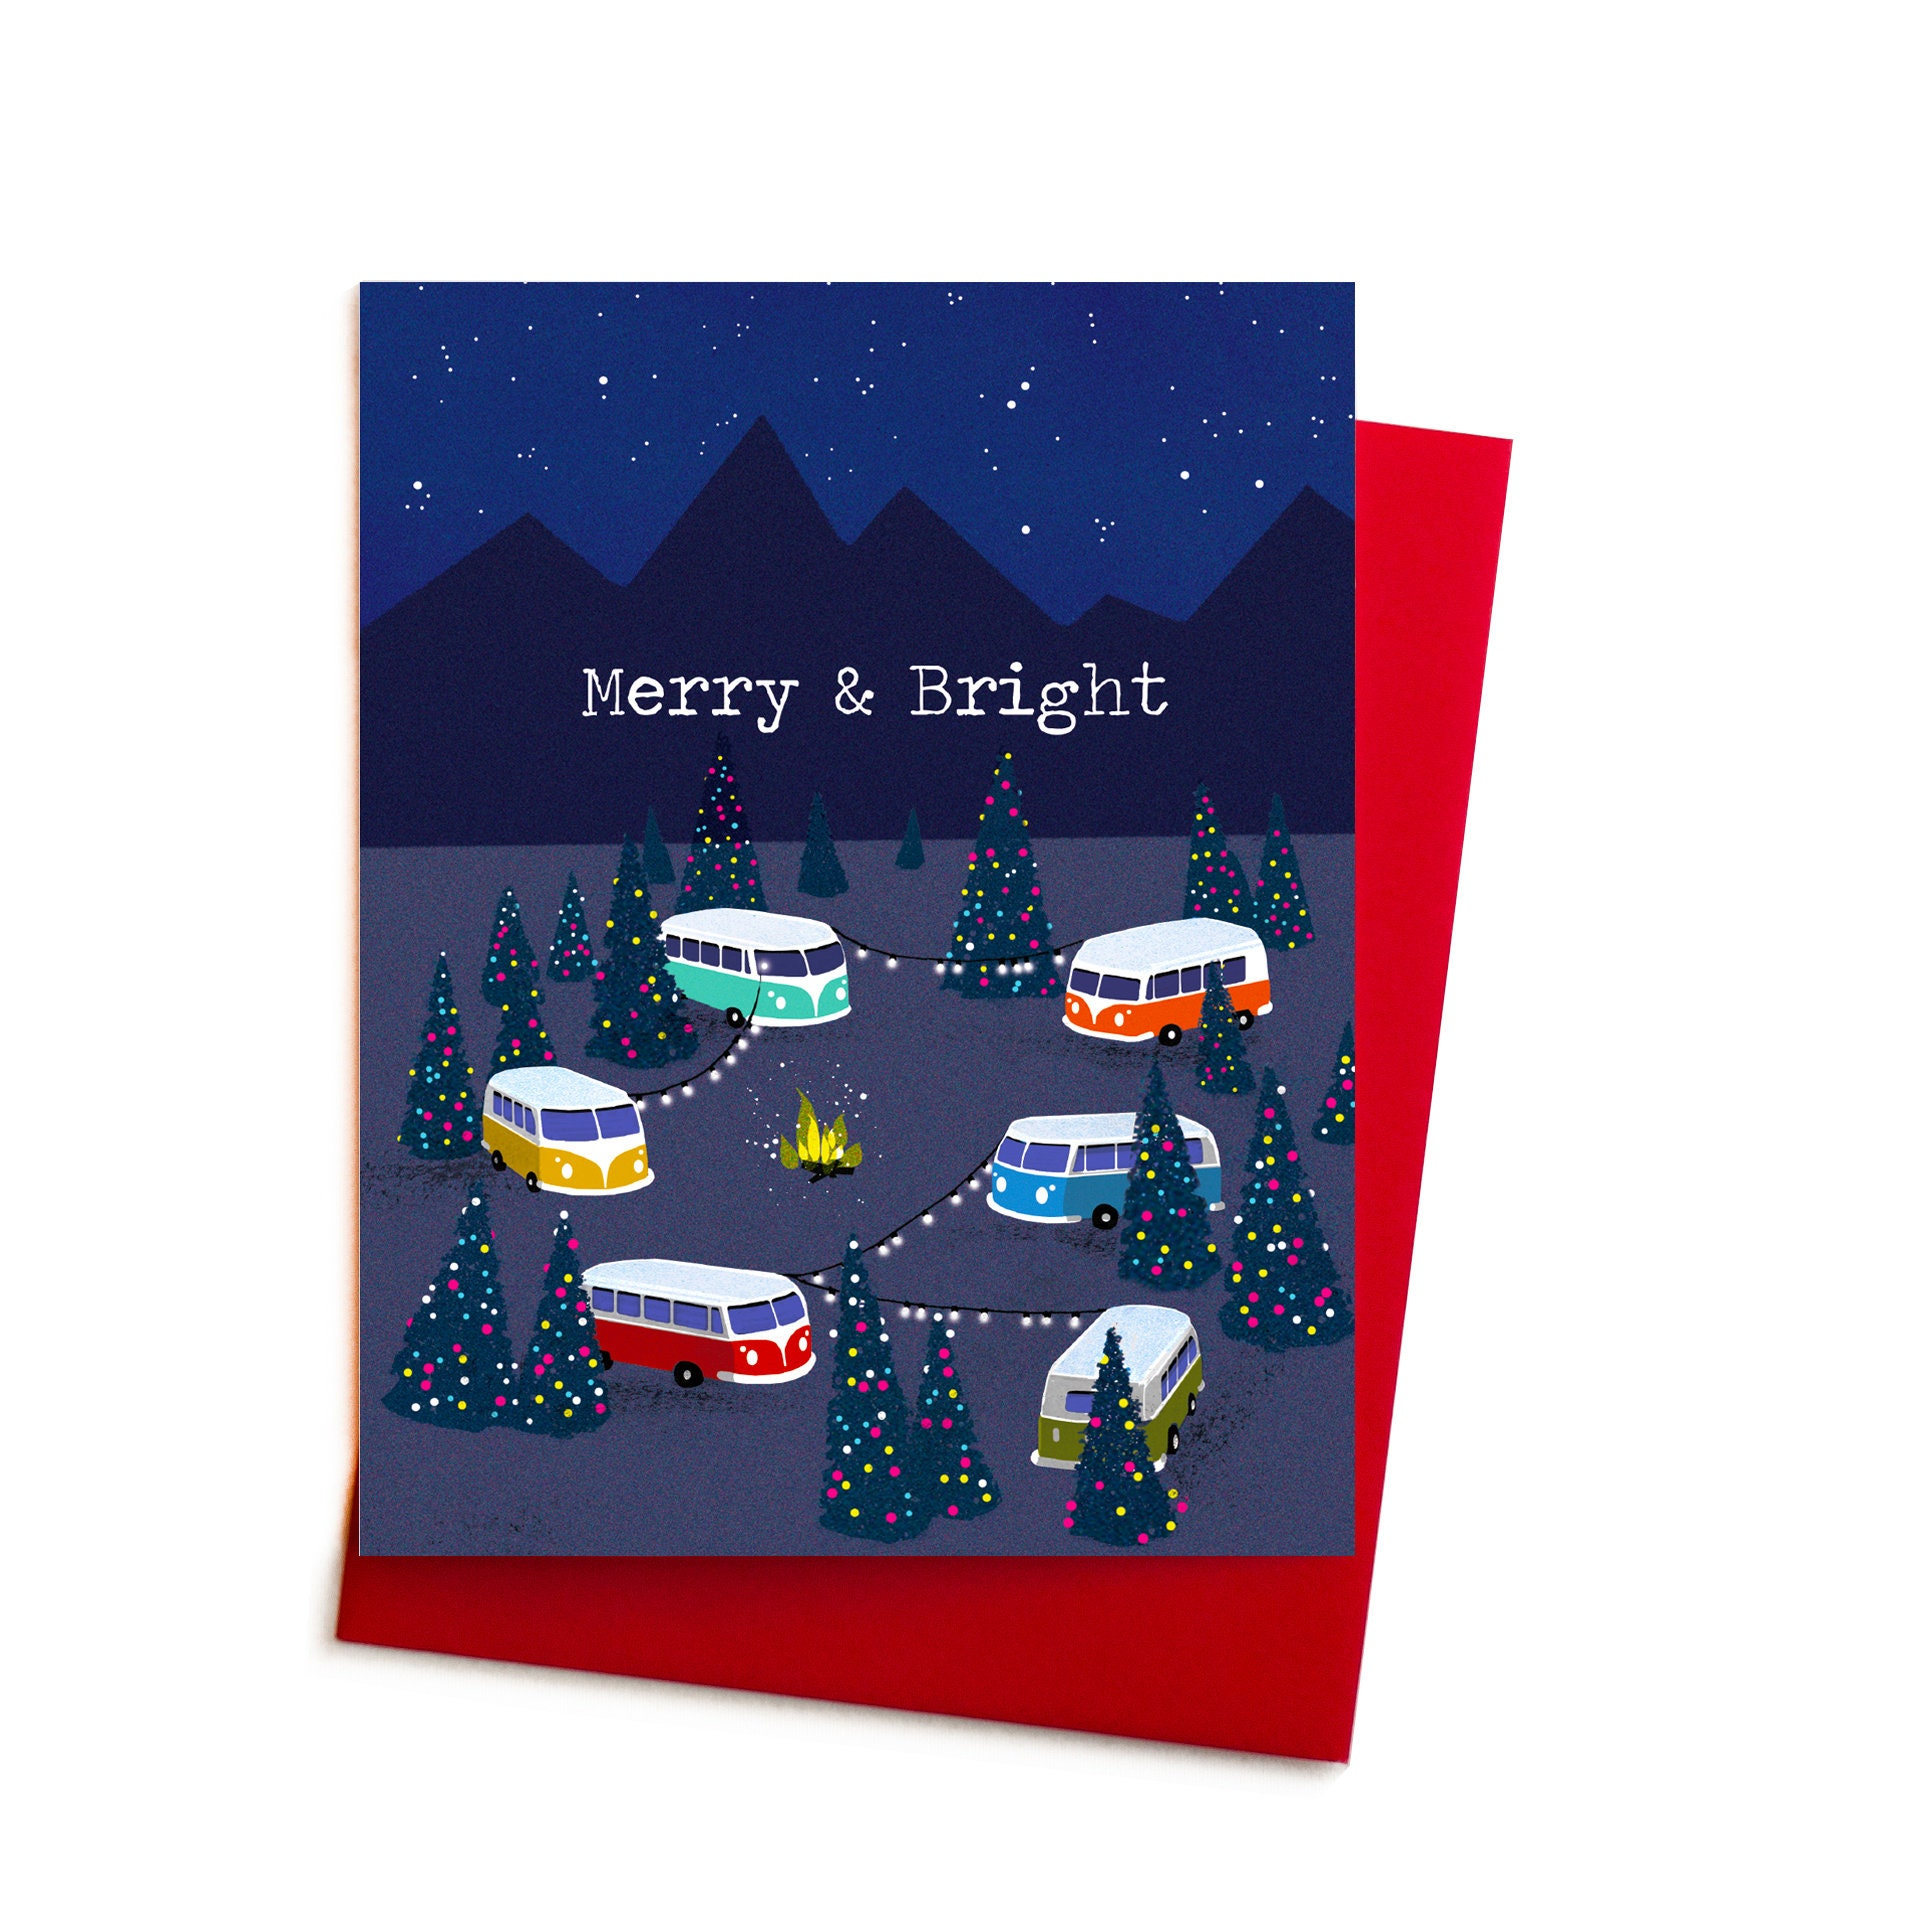 Christmas Card Merry and Bright Holiday Campout Volkswagen | Etsy